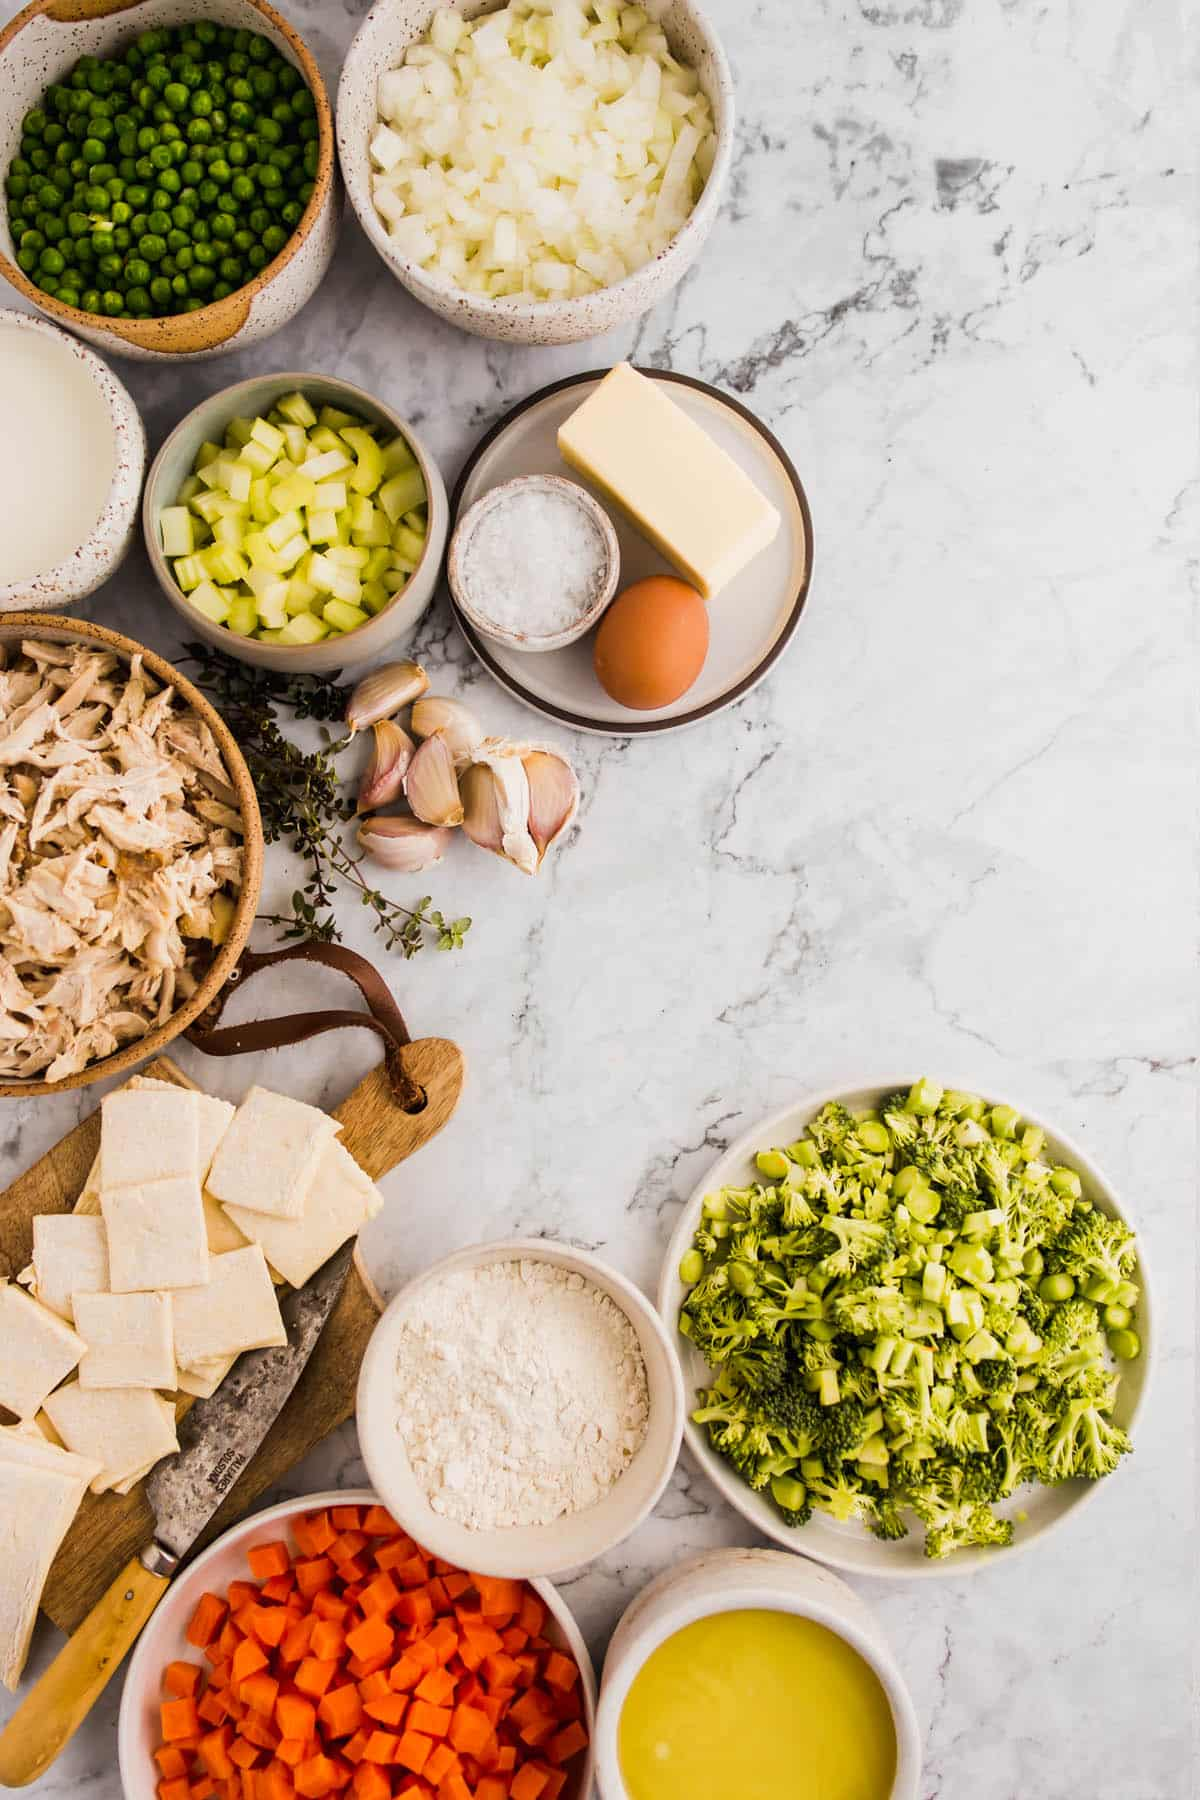 Ingredients for Quick and Easy Homemade Chicken Pot Pies with Puff Pastry. Using peas, onion, celery, salt, butter, egg wash, garlic, thyme, chicken, milk, brocolli, puff pastry, chicken stock, carrots, and flour.